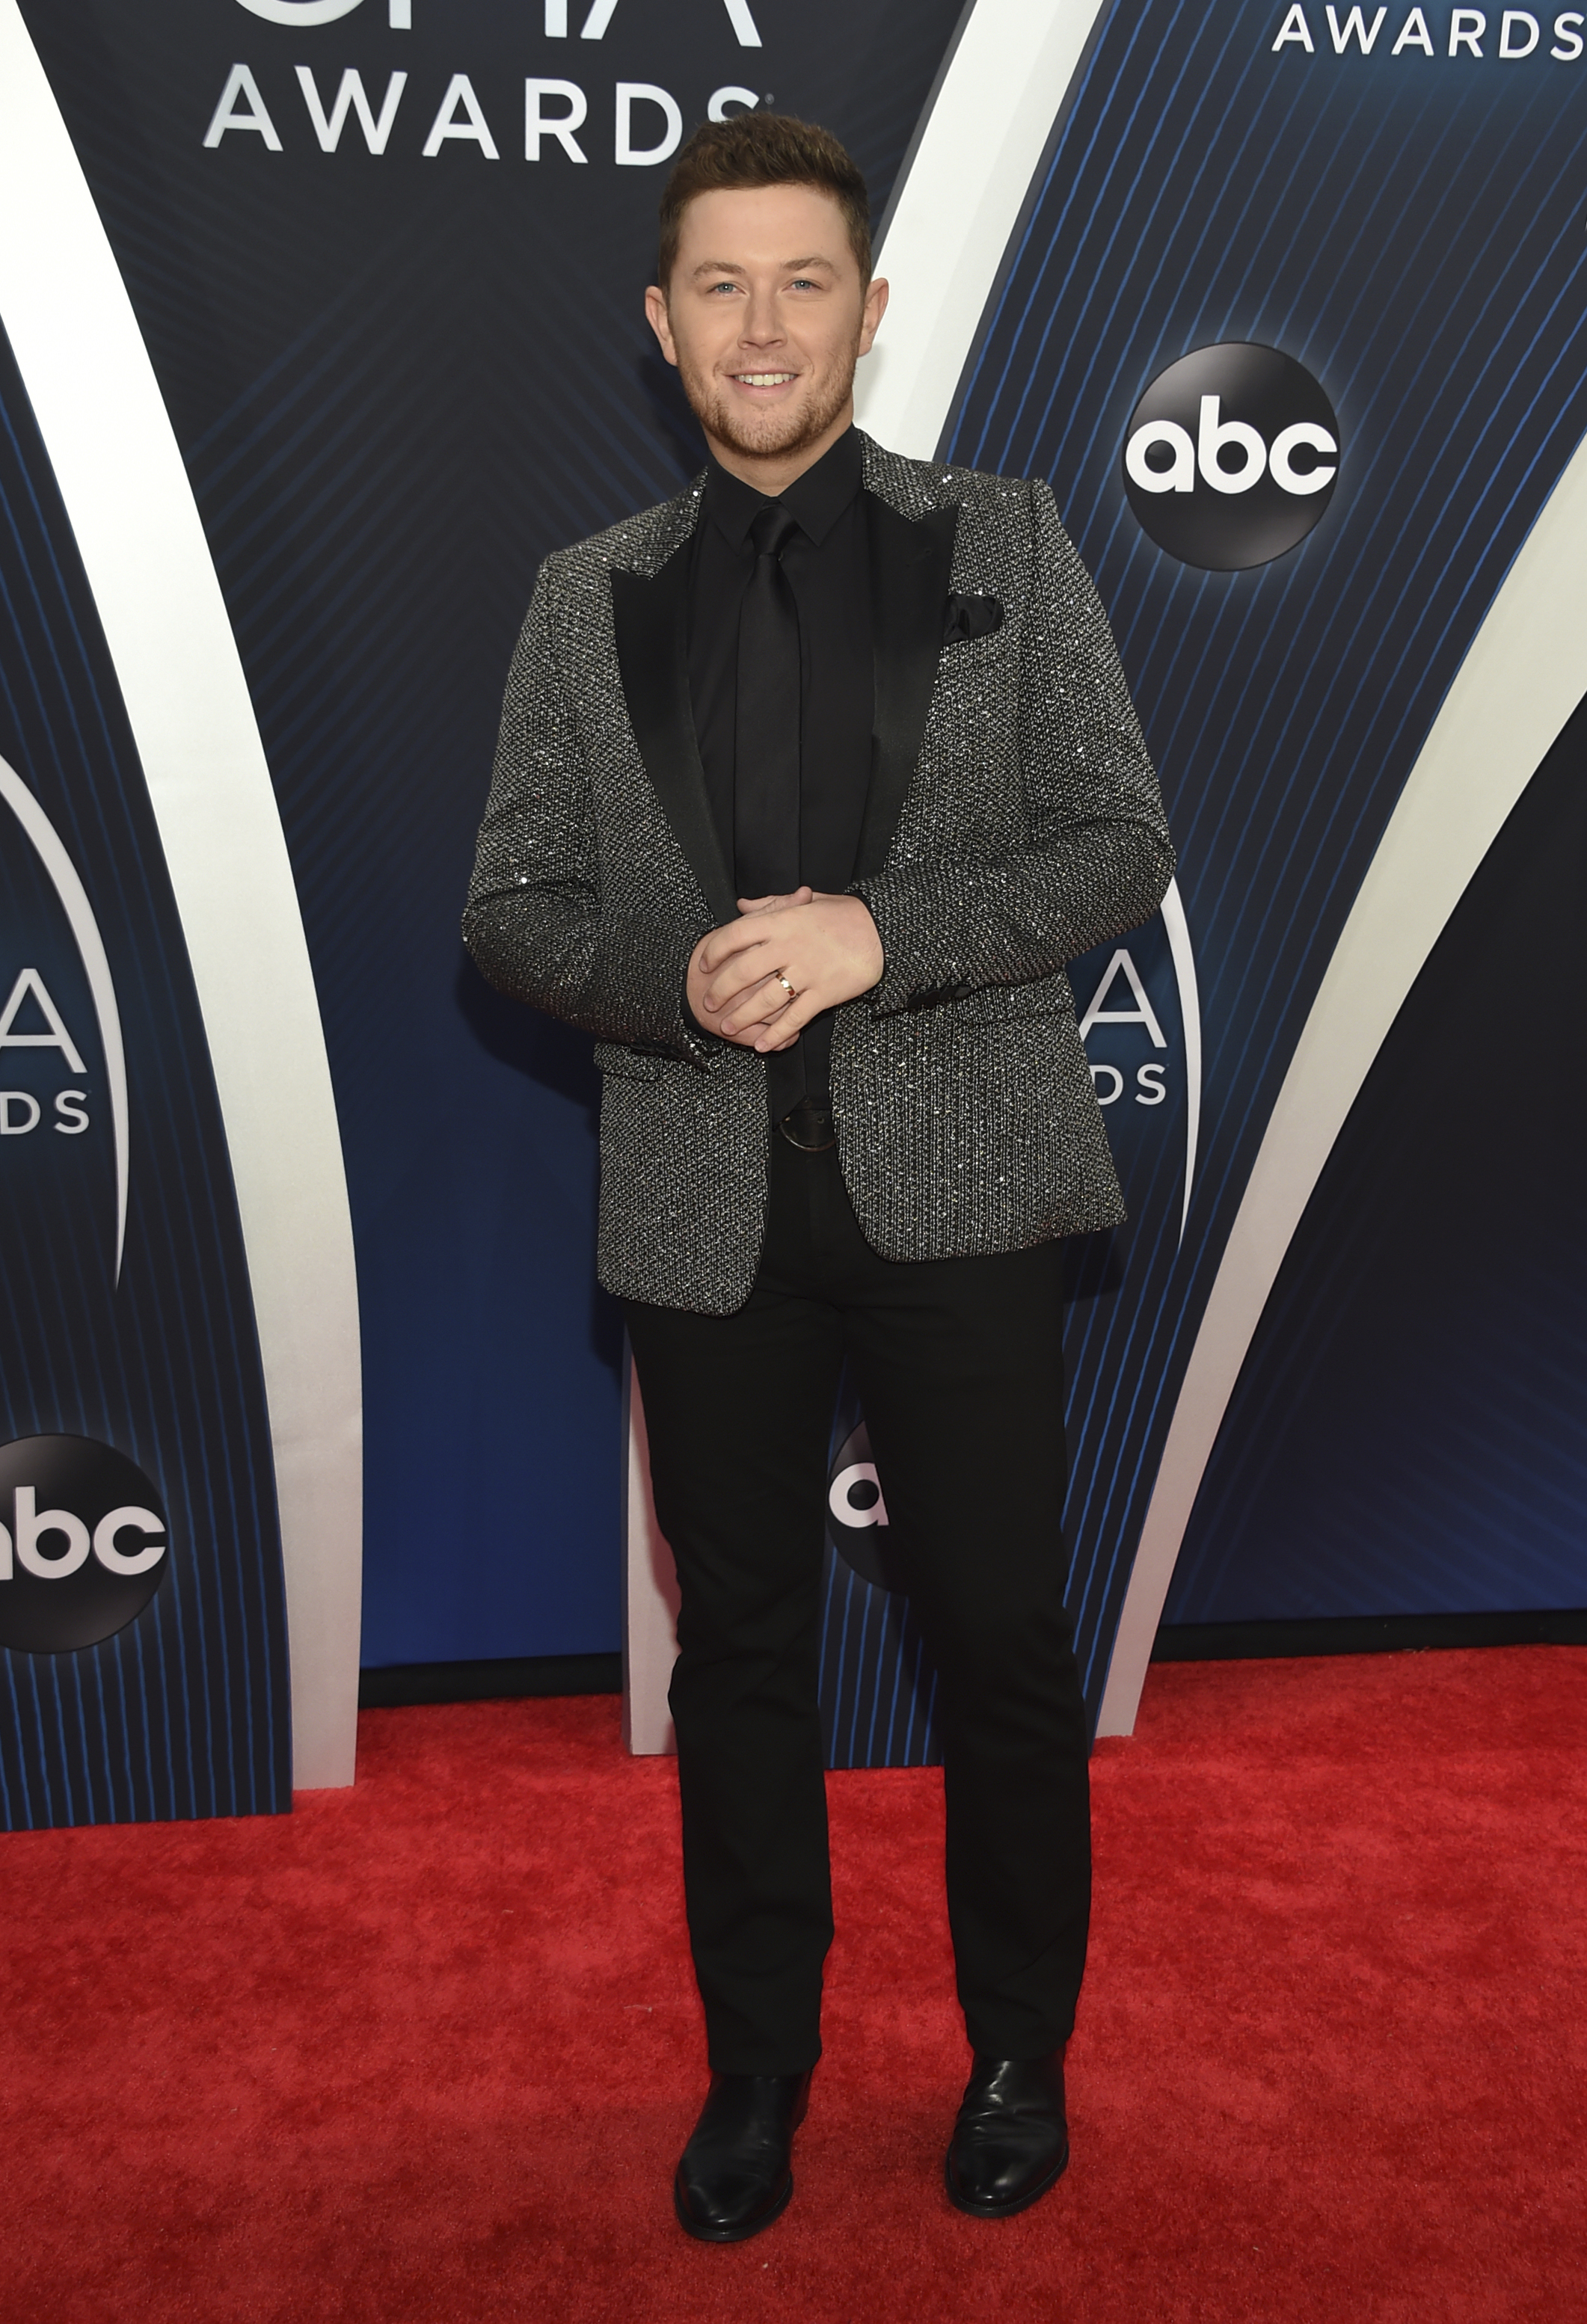 "<div class=""meta image-caption""><div class=""origin-logo origin-image ap""><span>AP</span></div><span class=""caption-text"">Scotty McCreery arrives at the 52nd annual CMA Awards at Bridgestone Arena on Wednesday, Nov. 14, 2018, in Nashville, Tenn. (Photo by Evan Agostini/Invision/AP) (Evan Agostini/Invision/AP)</span></div>"